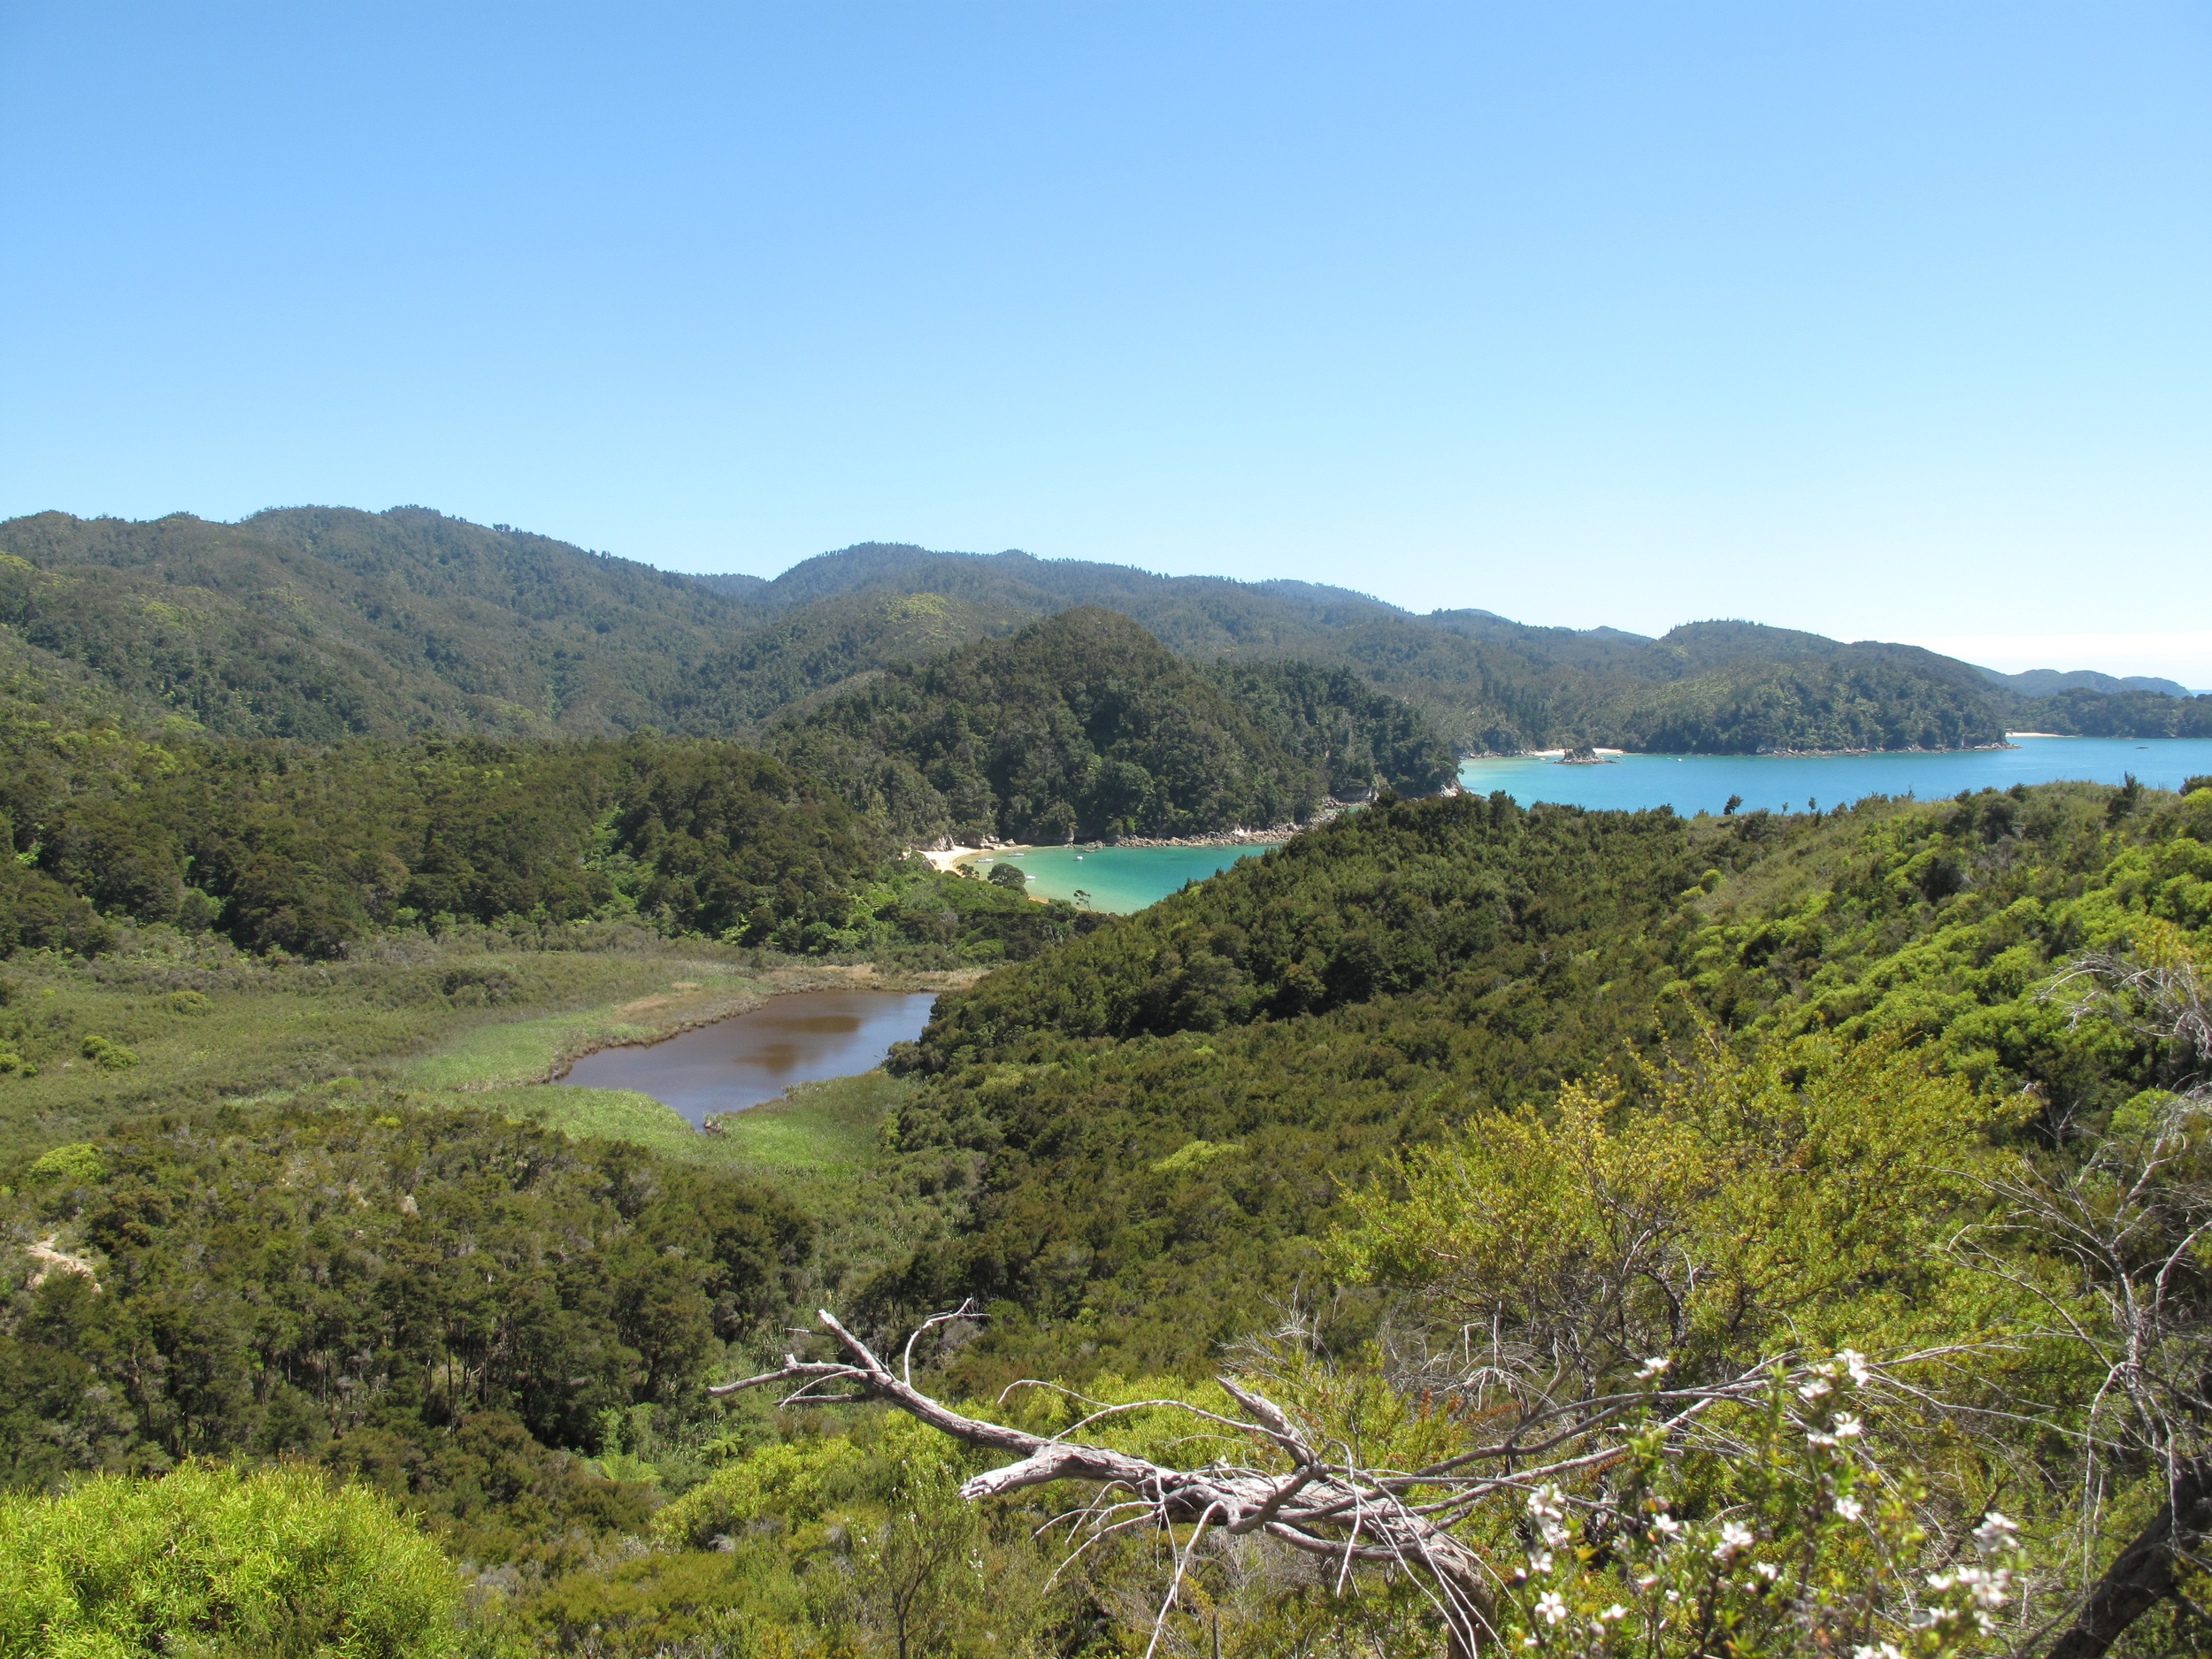 Neverland does exist - in the Able Tasman New Zealand!